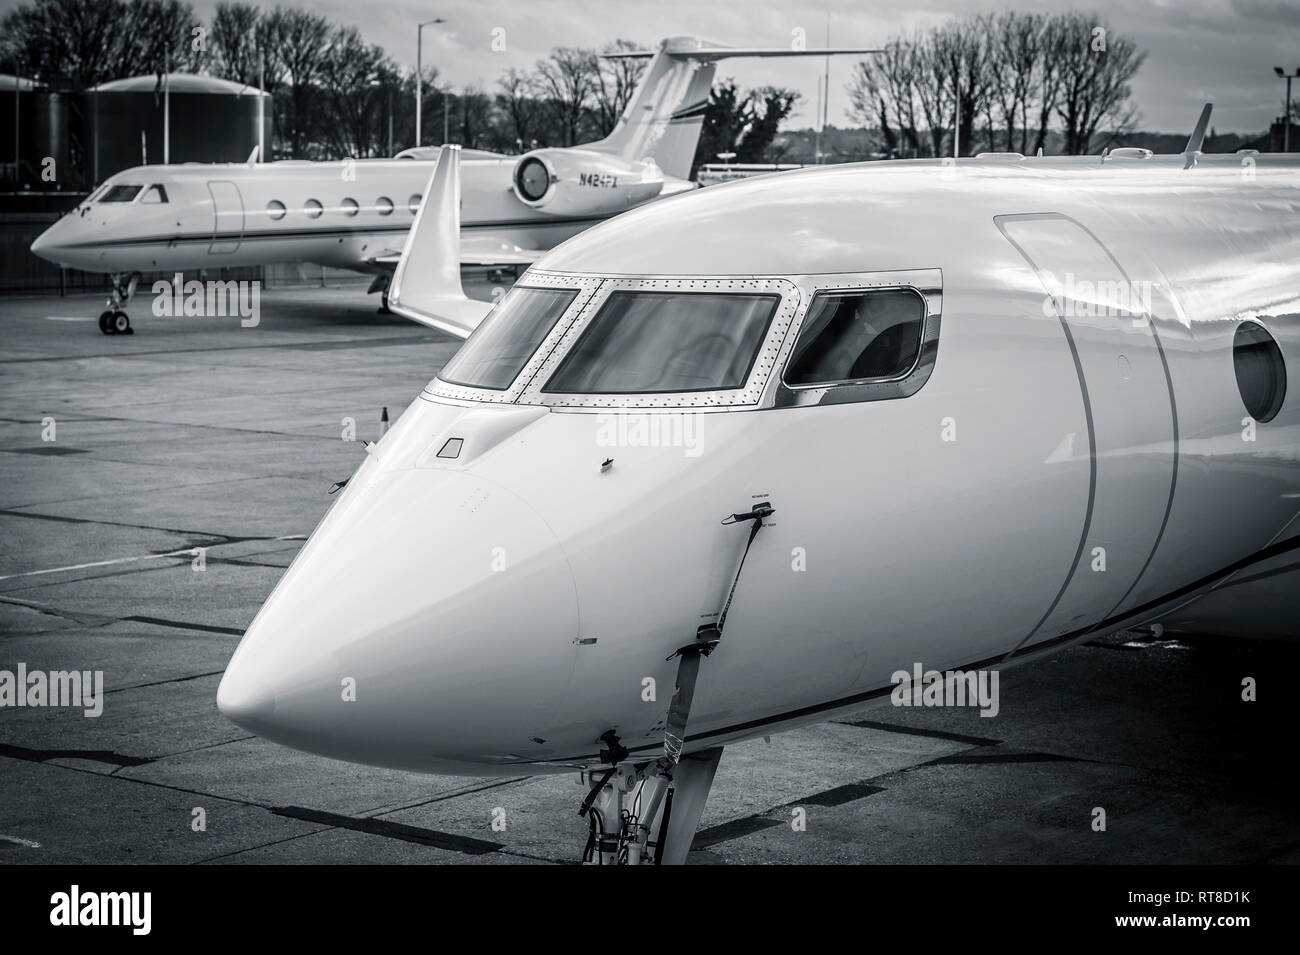 Front of a business jet aircraft at Luton airport, England. - Stock Image